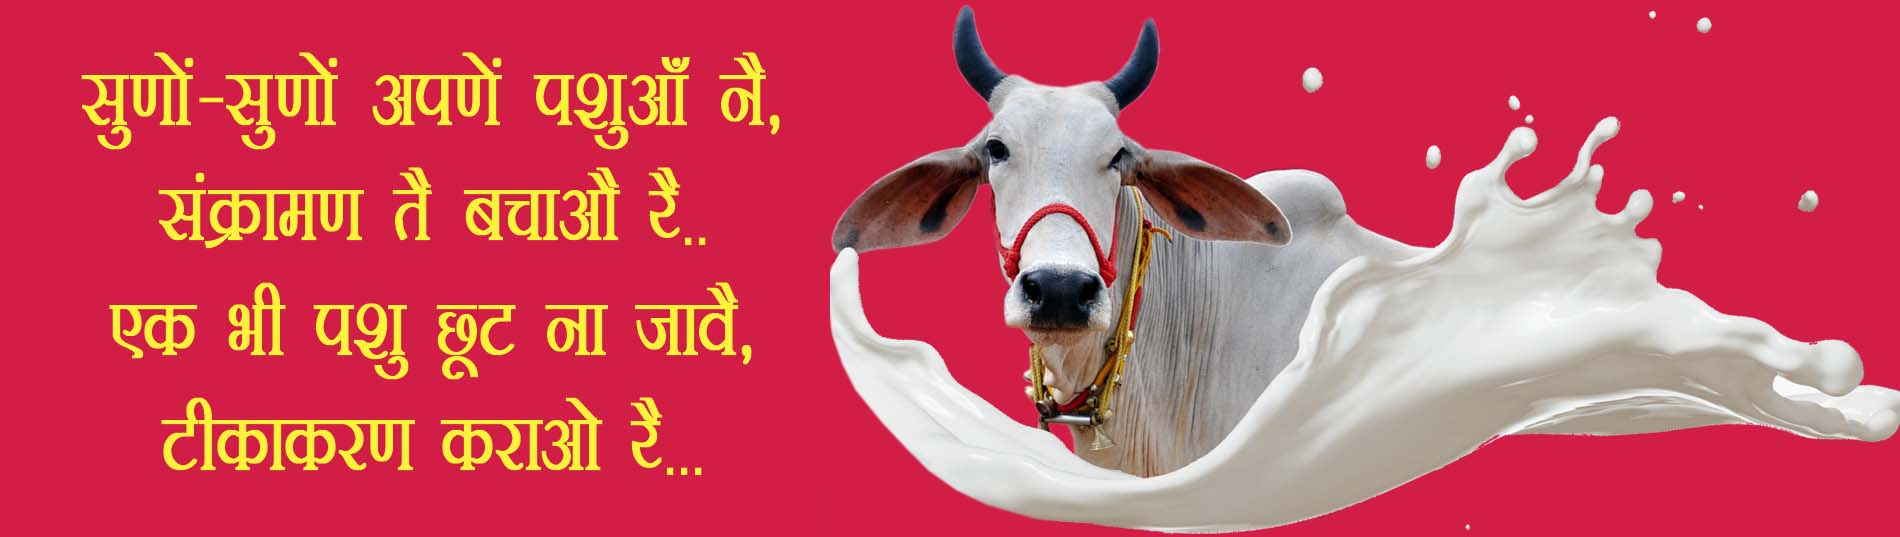 Home | Department of Animal Husbandry & Dairying, Government